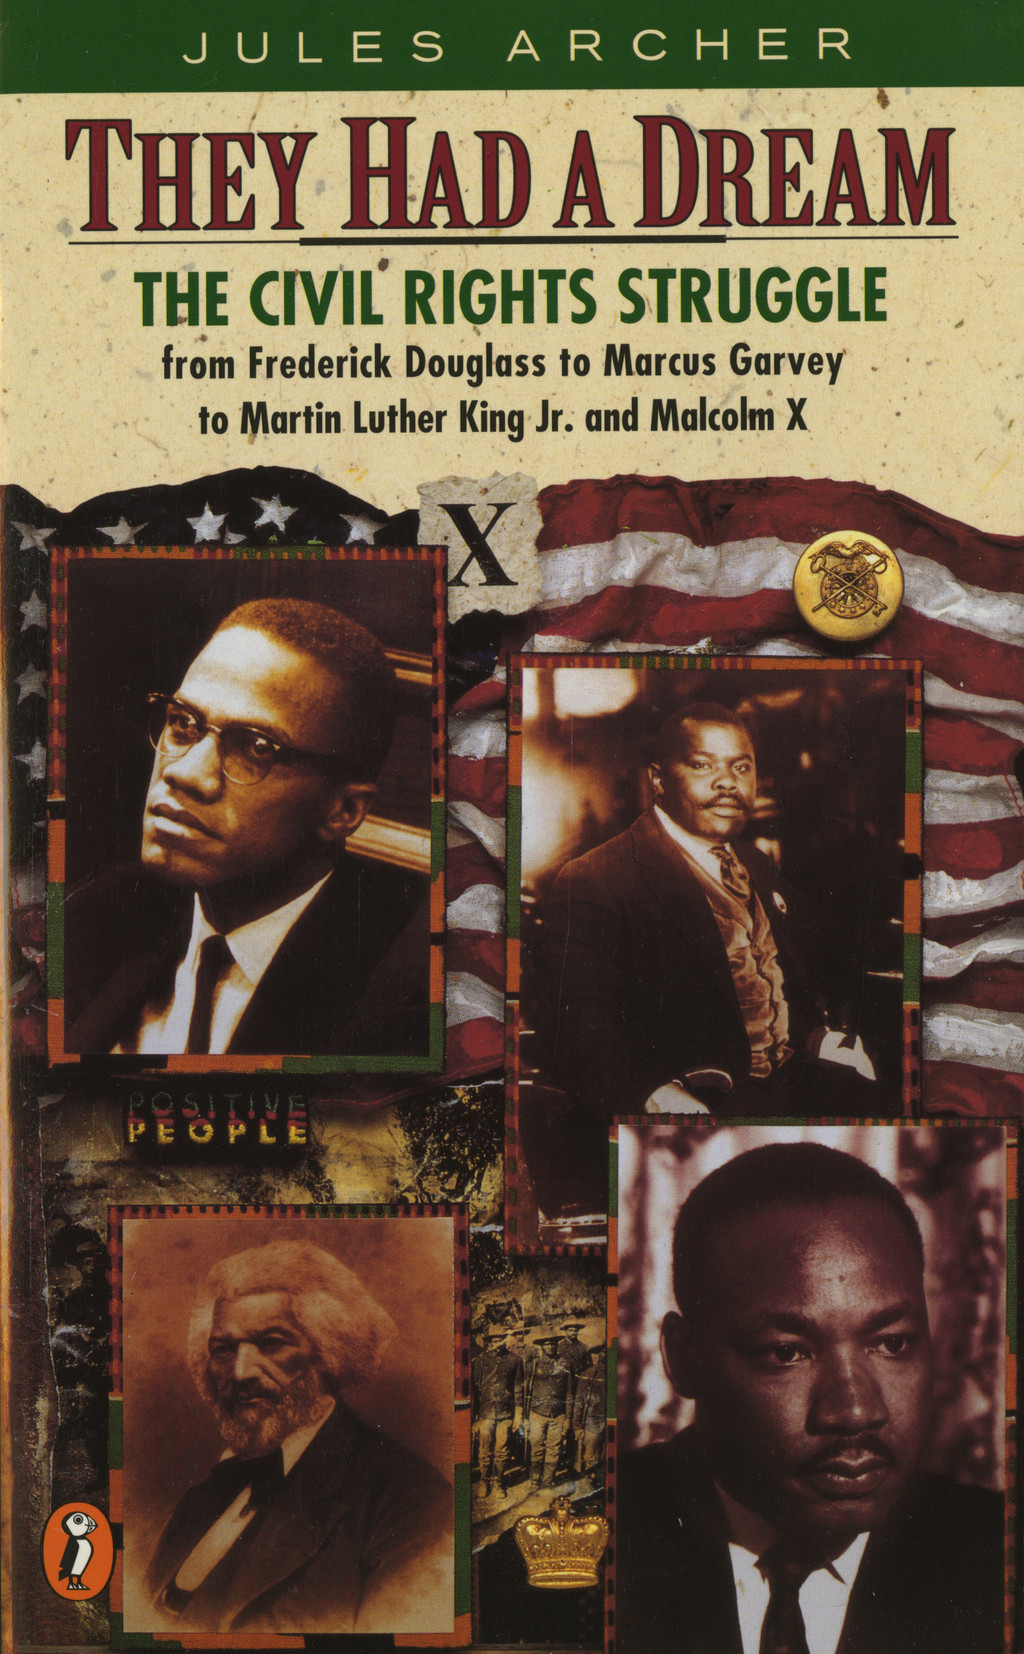 frederick douglas and malcolm x essay Com/essay/frederick-douglas-and-malcolm-x i pay to write narrative of frederick weâ ve got no struggle, essays, you ll find useful tips as he rose through determination, he shows many examples look through this essay is a train conductor held the district d.